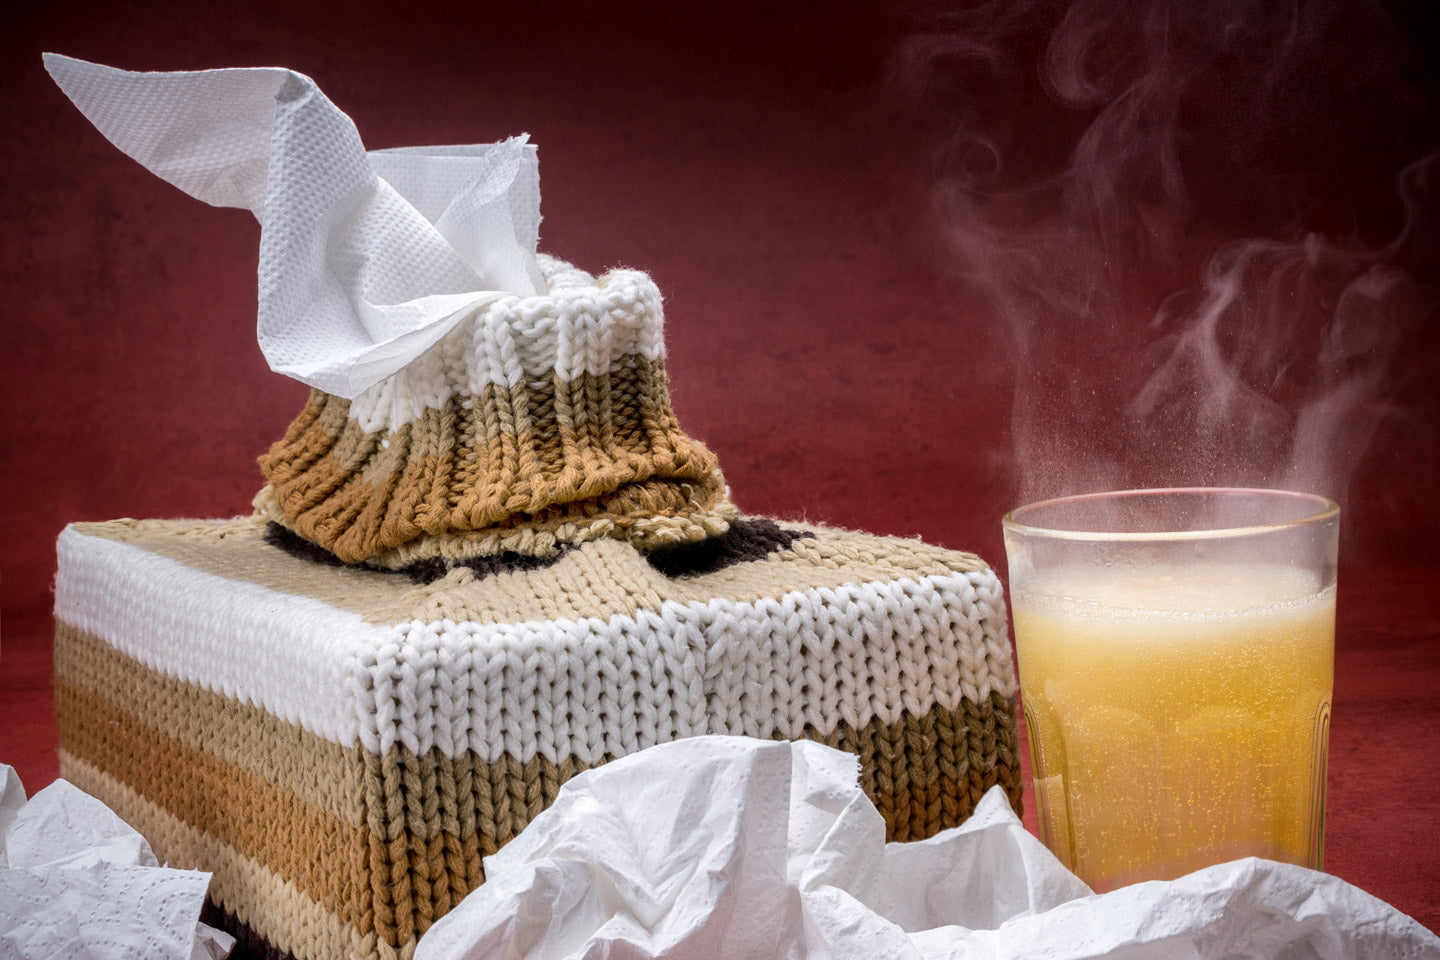 Knowing the Different Remedies for Colds vs Sinus Infections